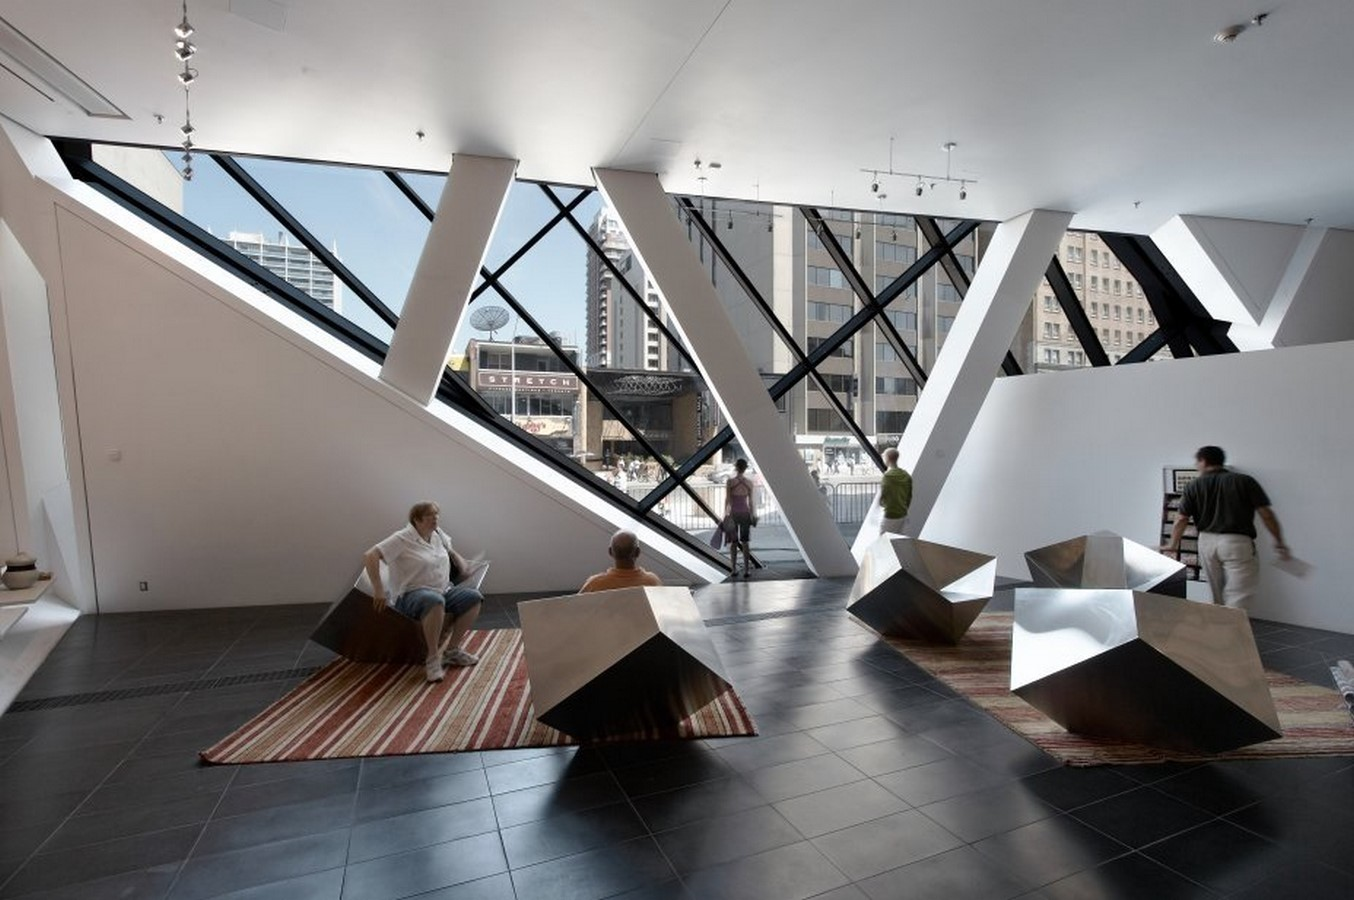 Royal Ontario Museum by Daniel Libeskind: The modern Crystal - Sheet4